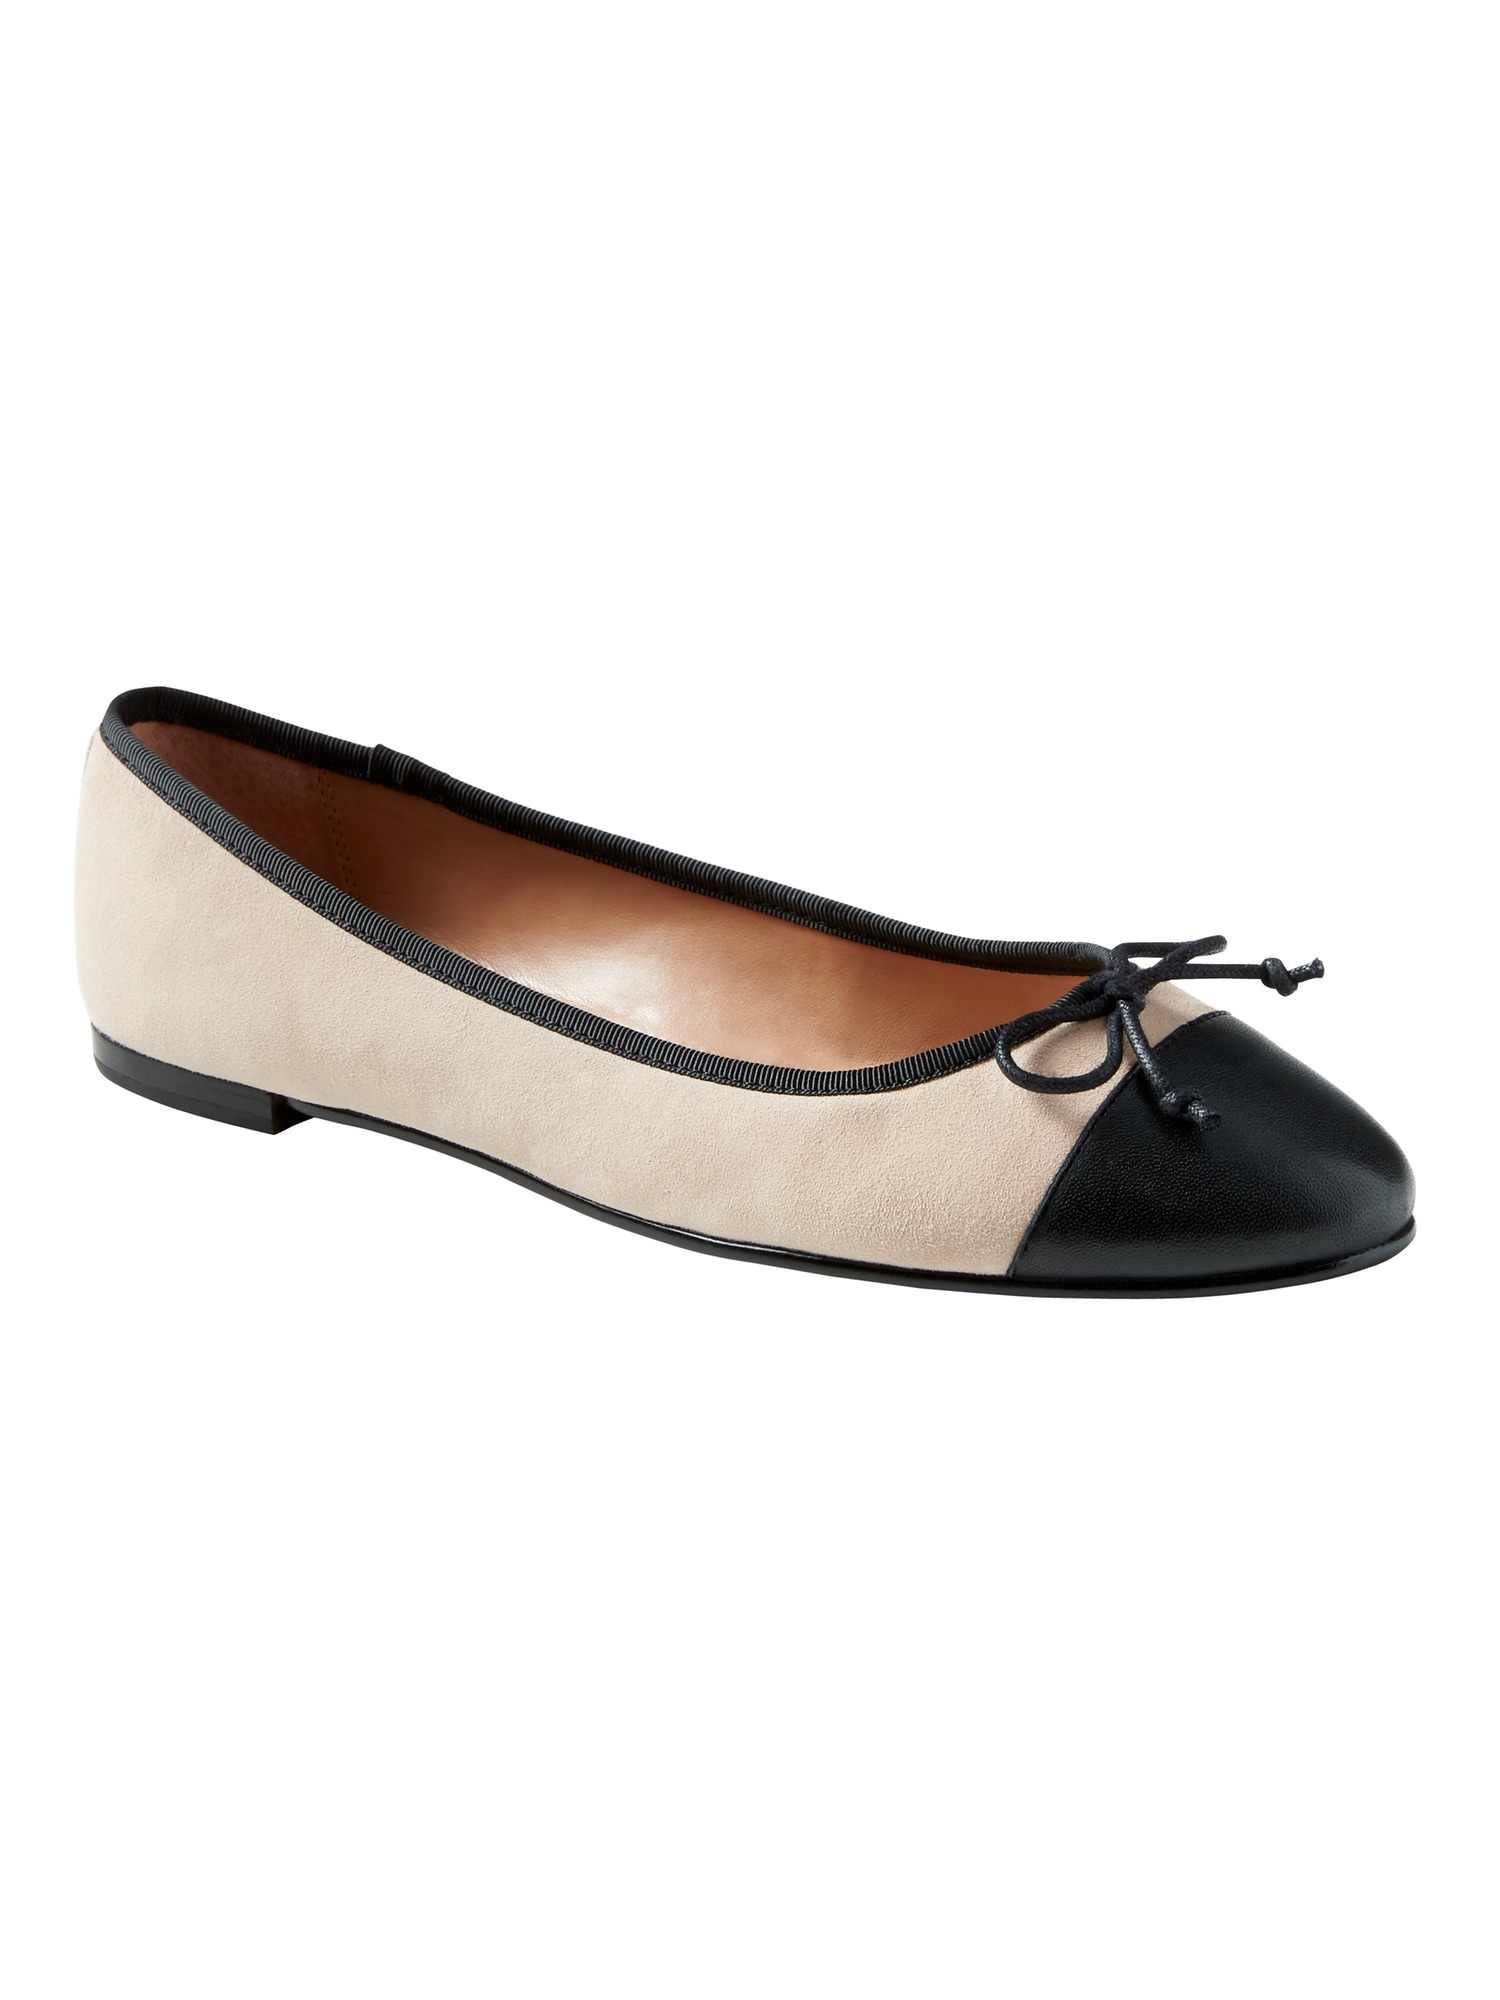 Banana Republic Womens Square-Toe Flat Suede Size 10 6b1JynjL